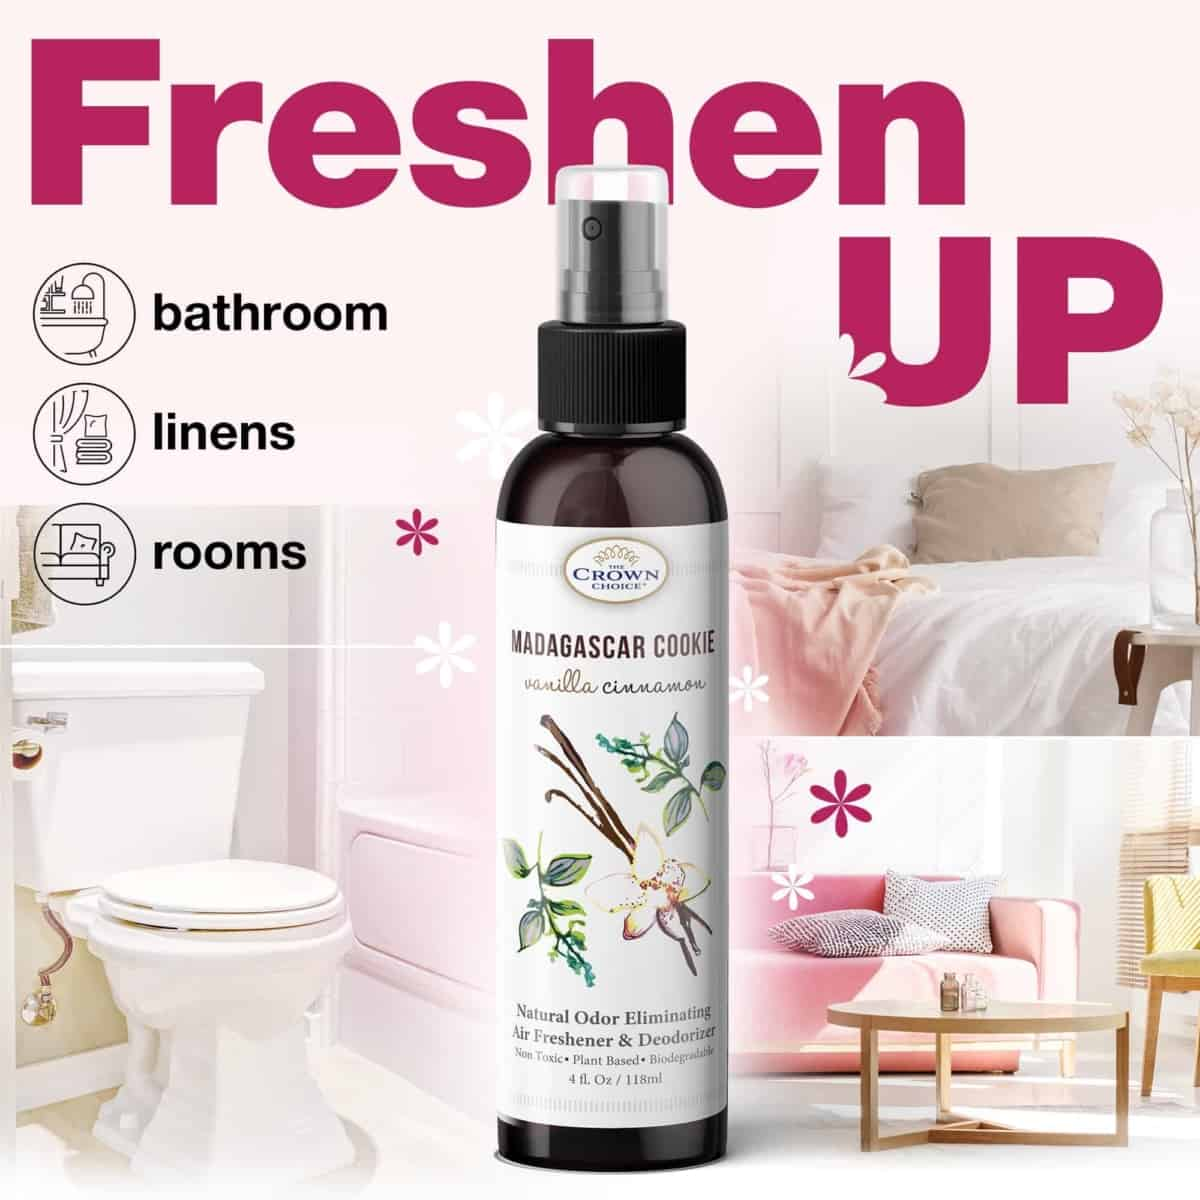 Natural Bathroom Freshener That Eliminates Odors With Natural Ingredients